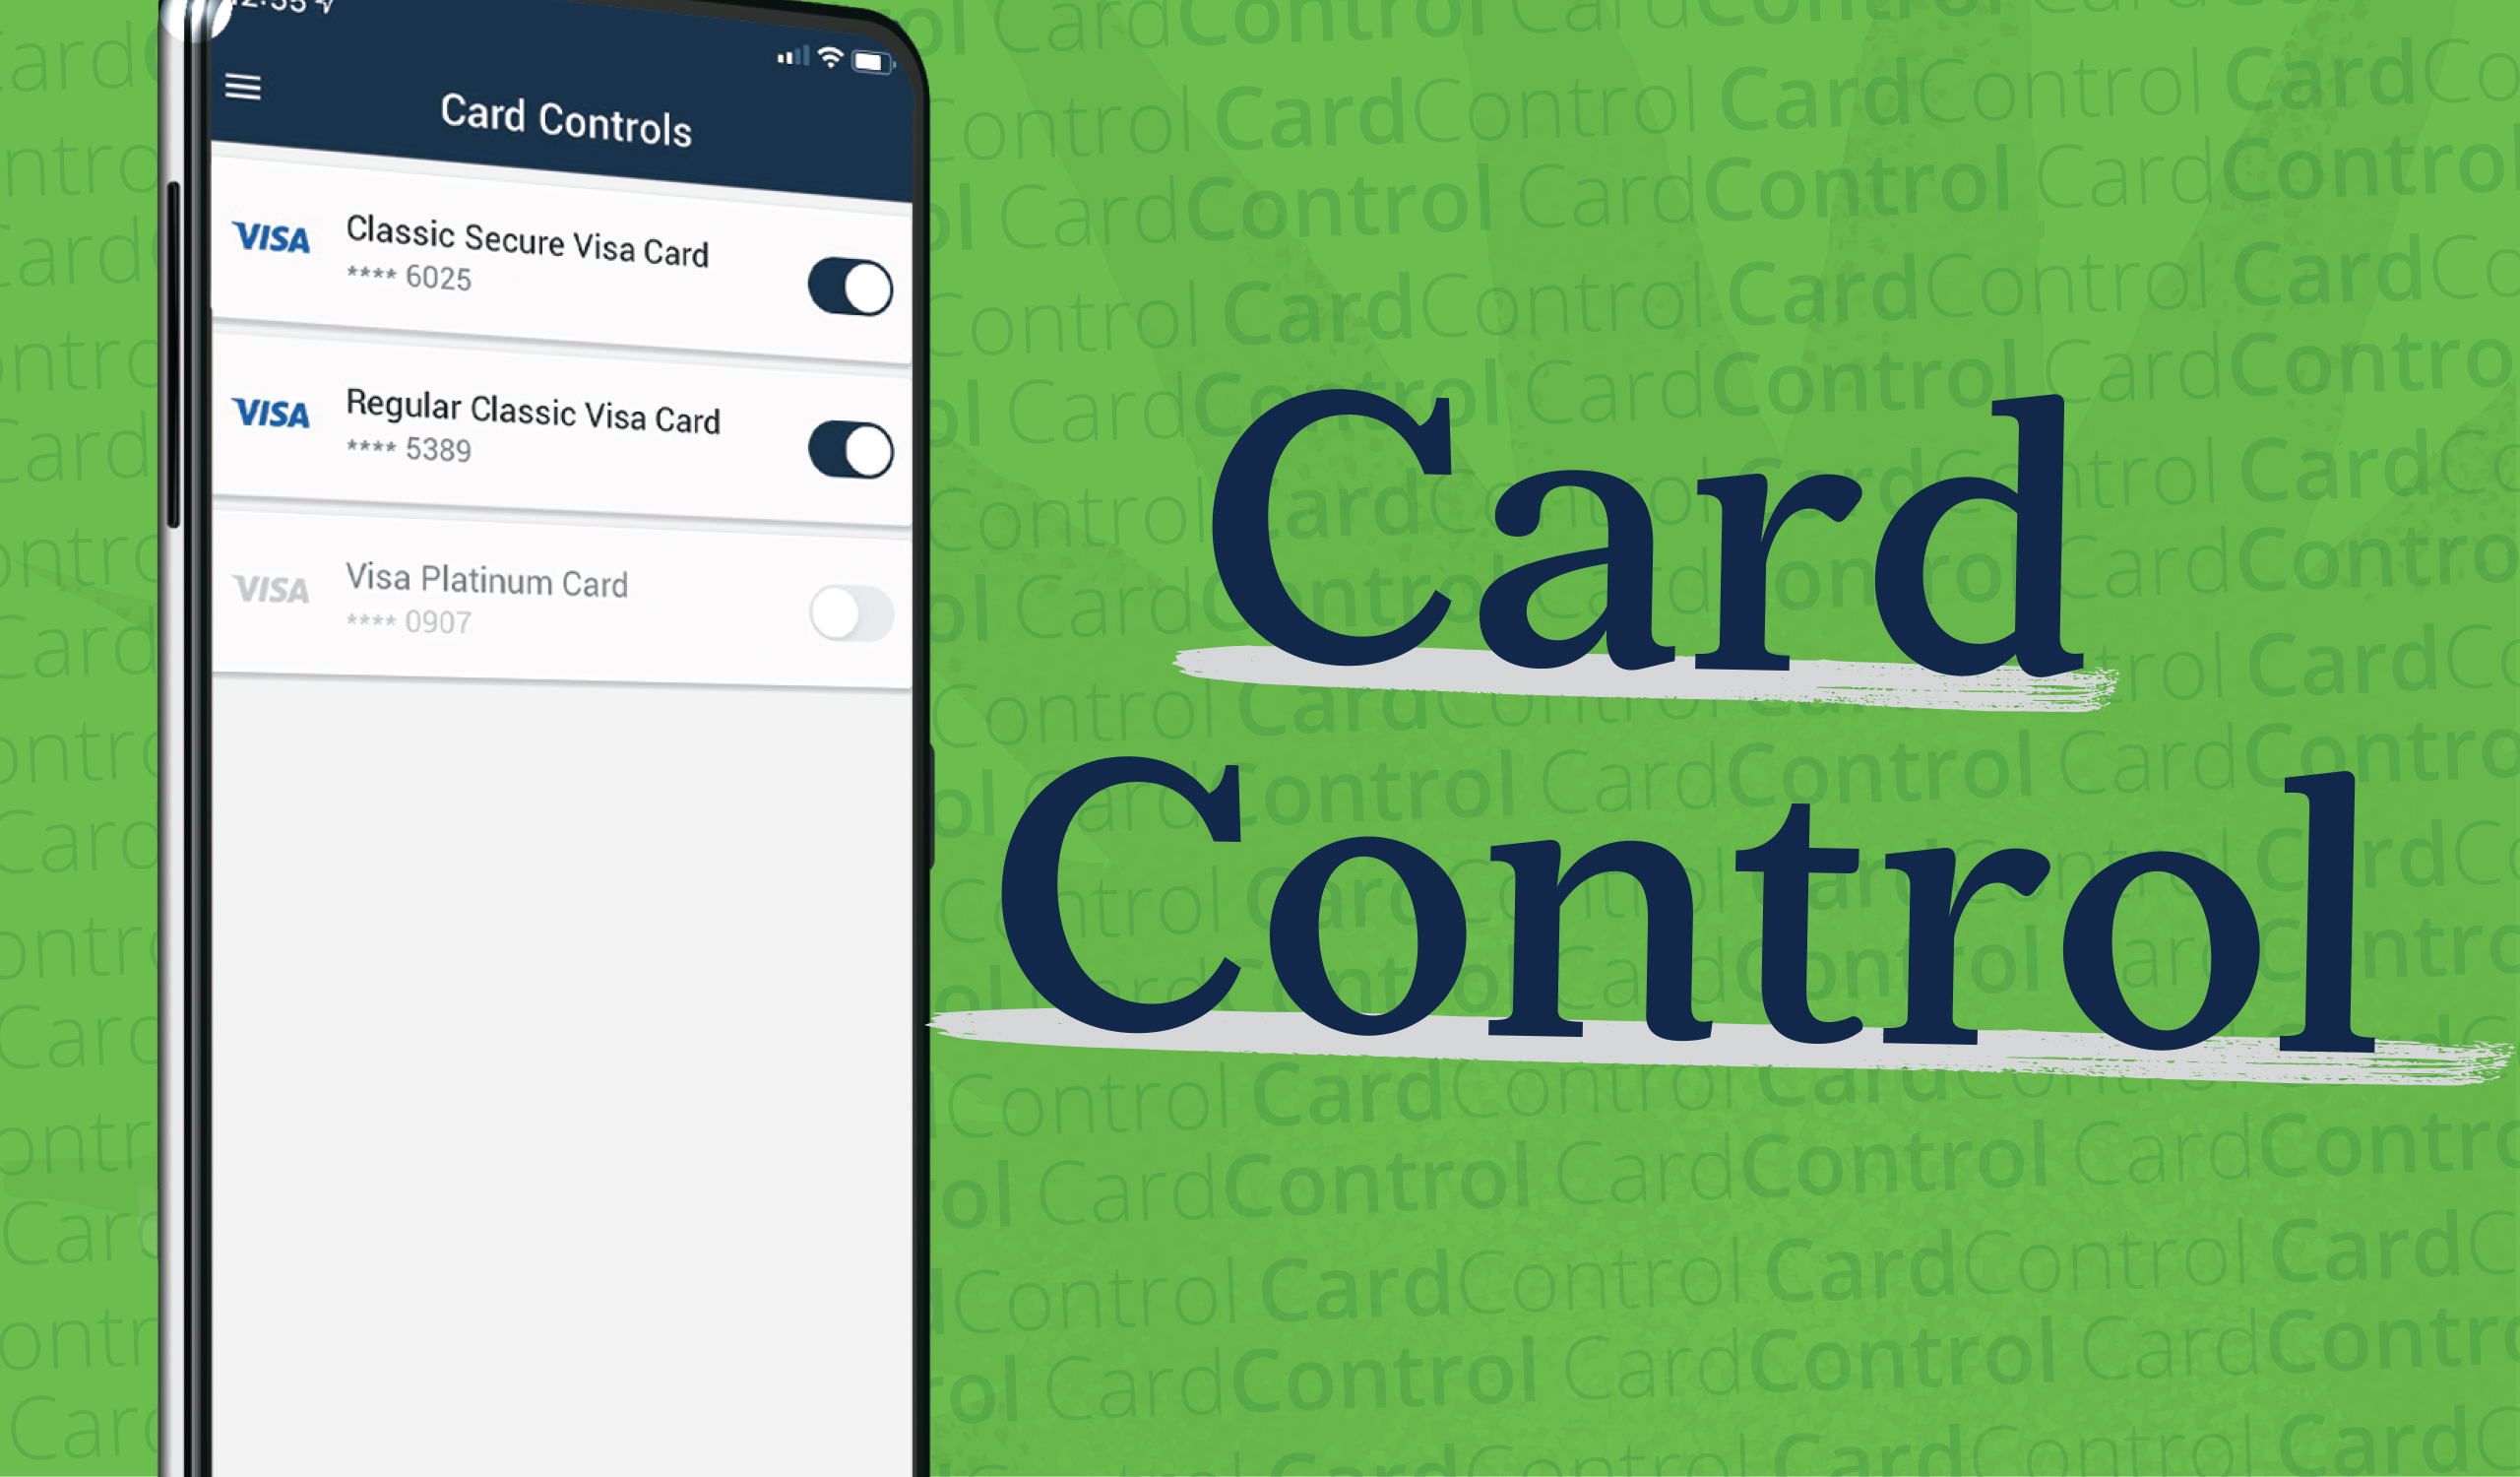 Manage your cards with Card Controls